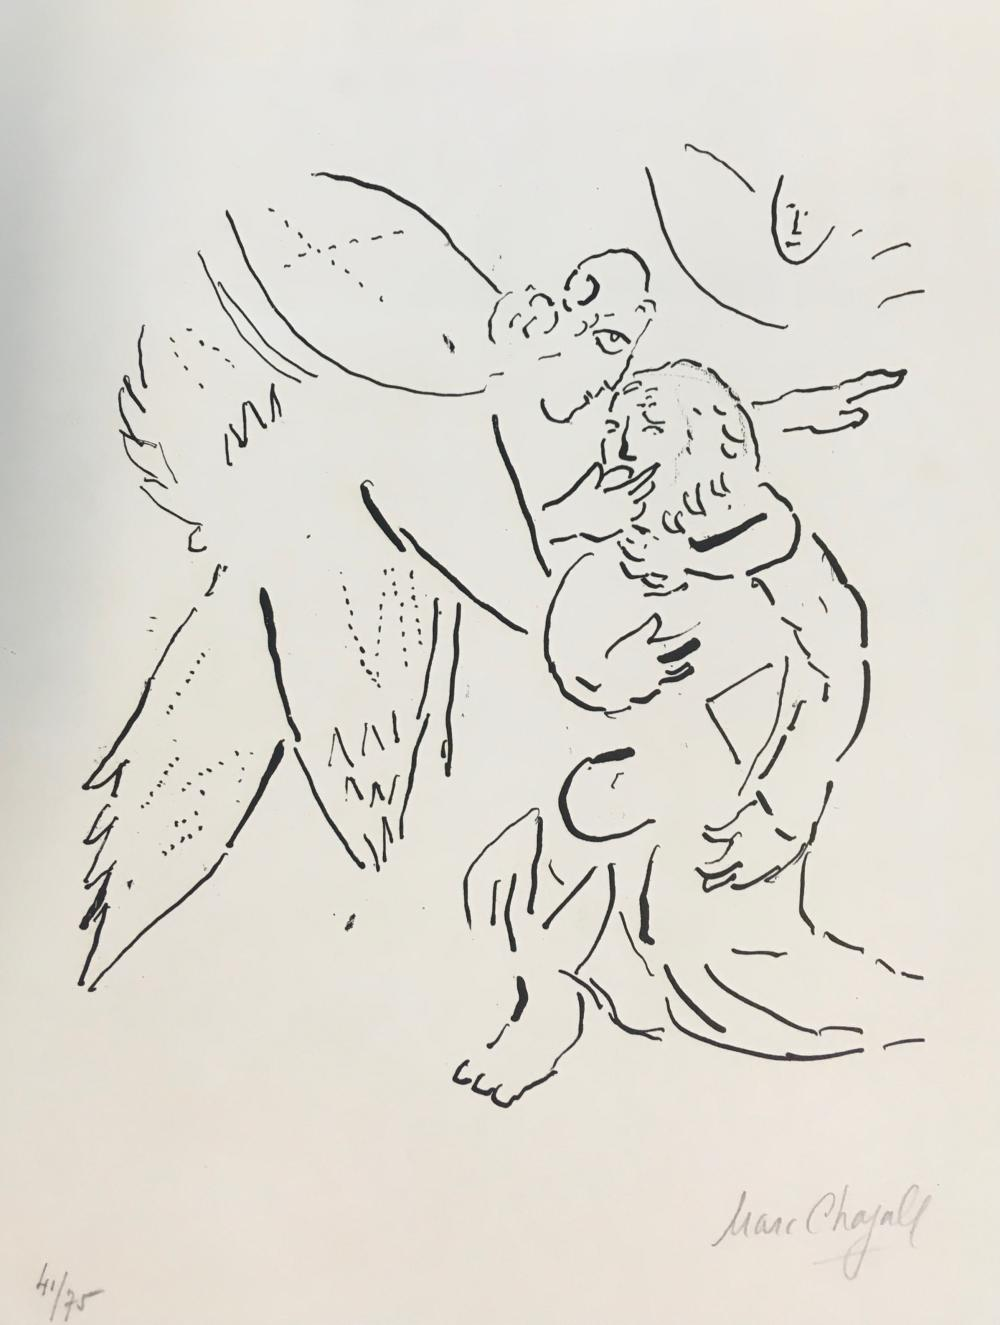 Marc Chagall - Isaiah Divinely Inspired